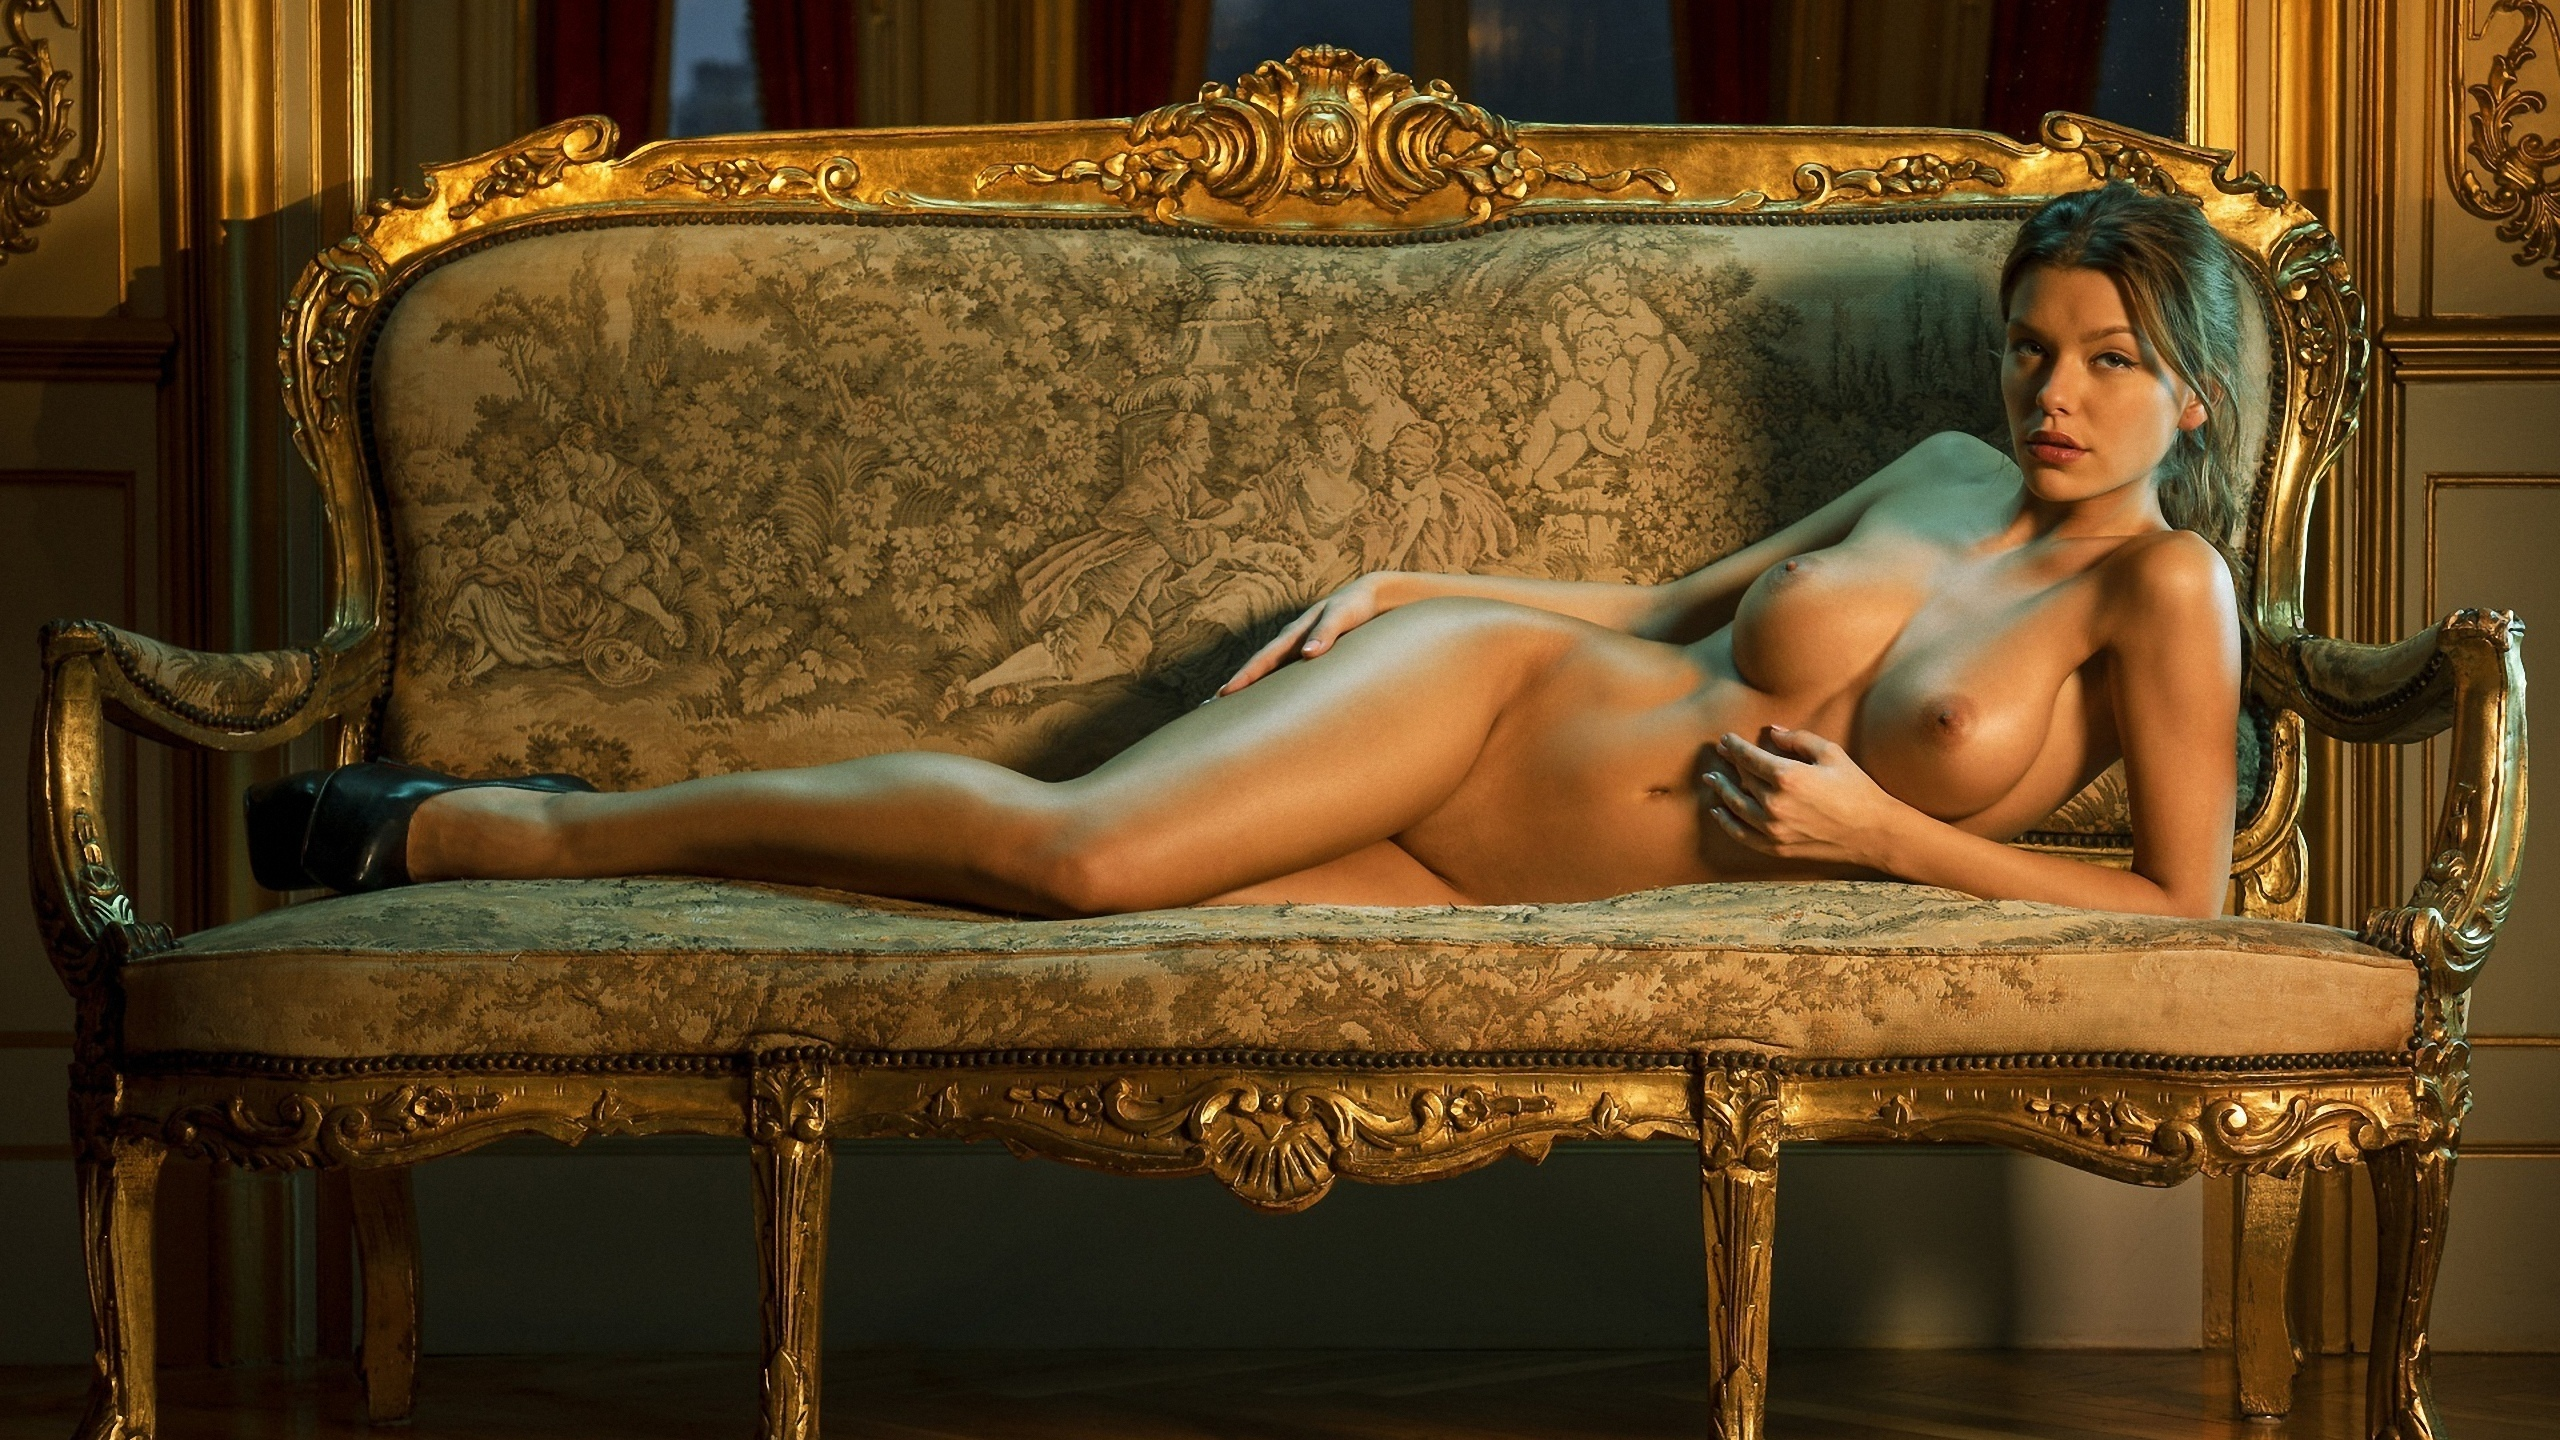 Only silk and satin galleries